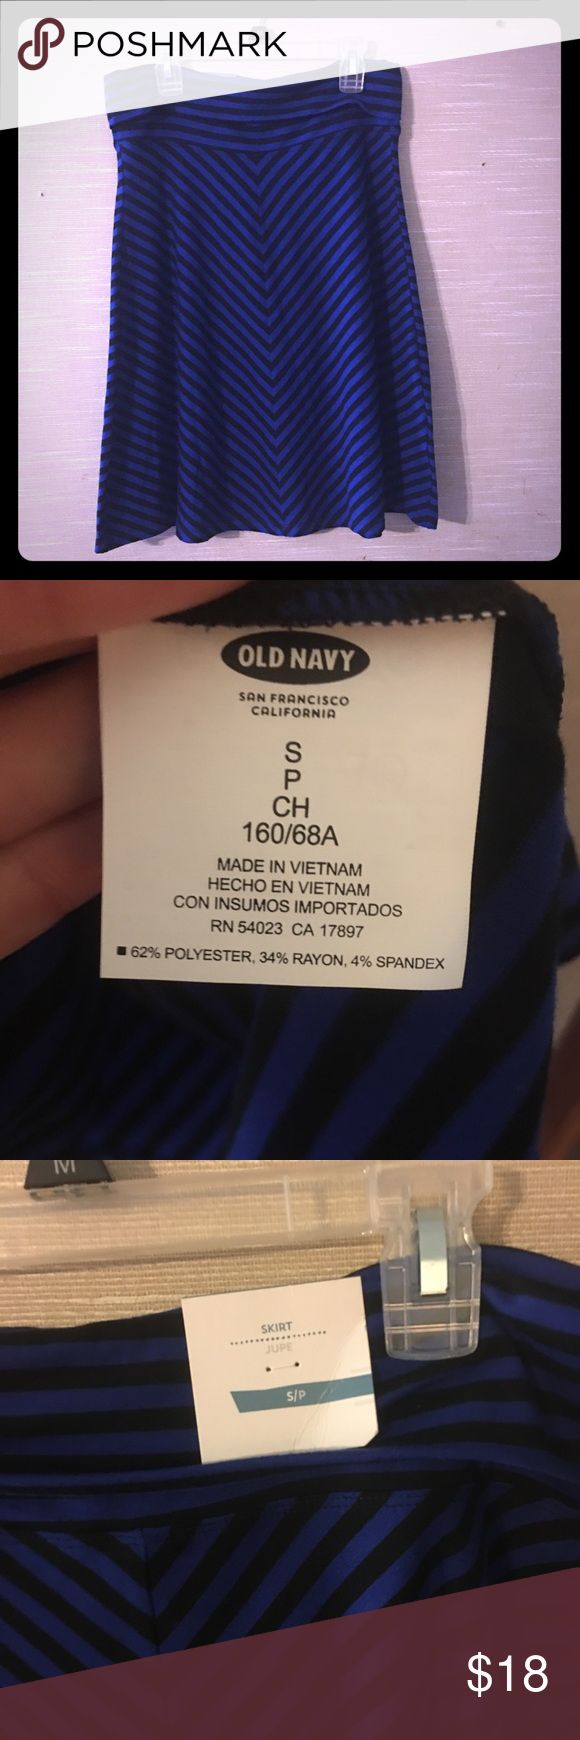 Old Navy striped skirt. NWT small Royal blue and black Old Navy skirt  Nwt Old Navy Skirts